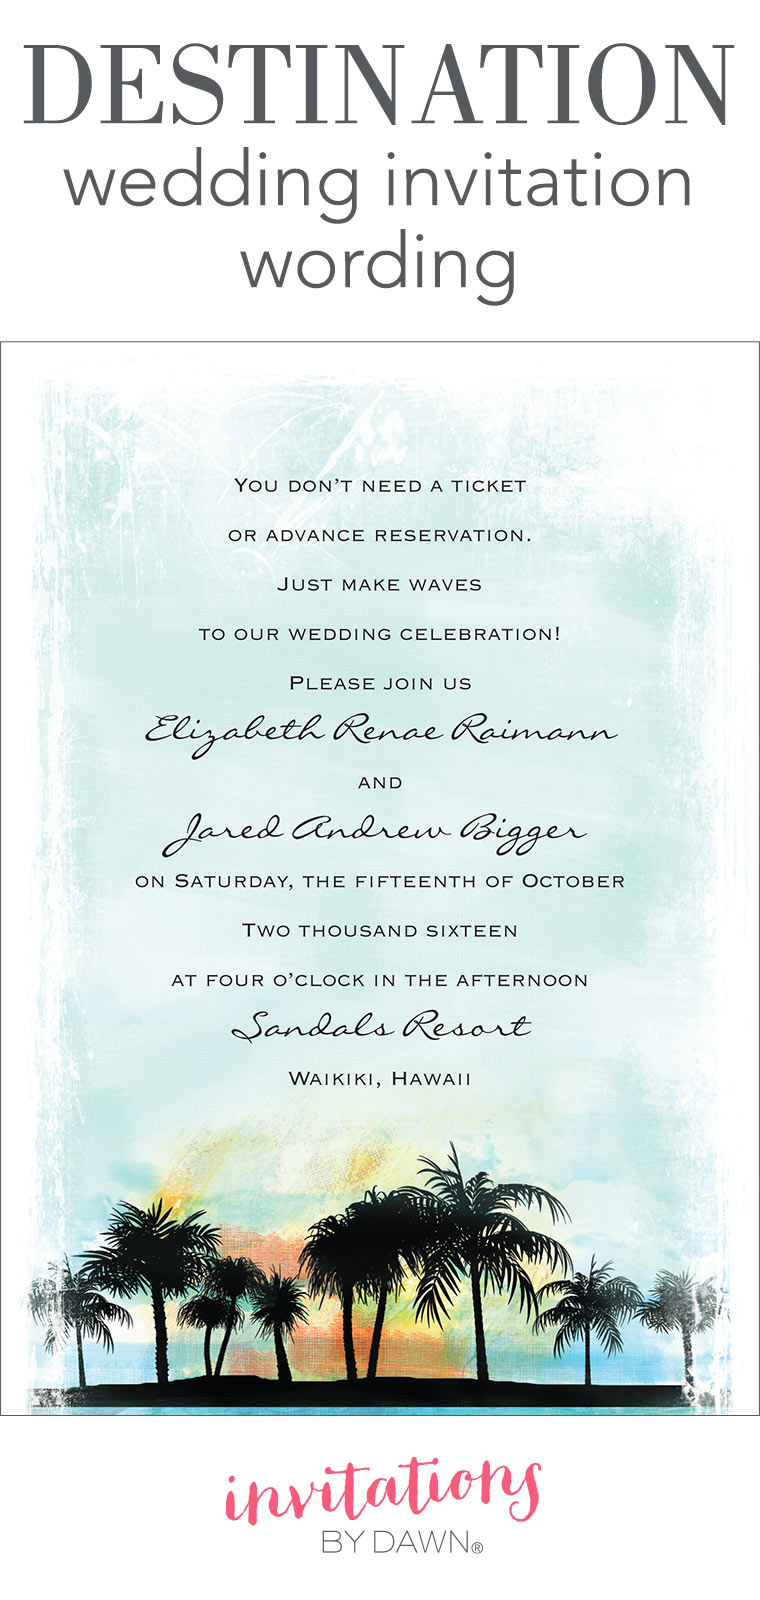 Destination Wedding Invitation Wording | Invitations by Dawn